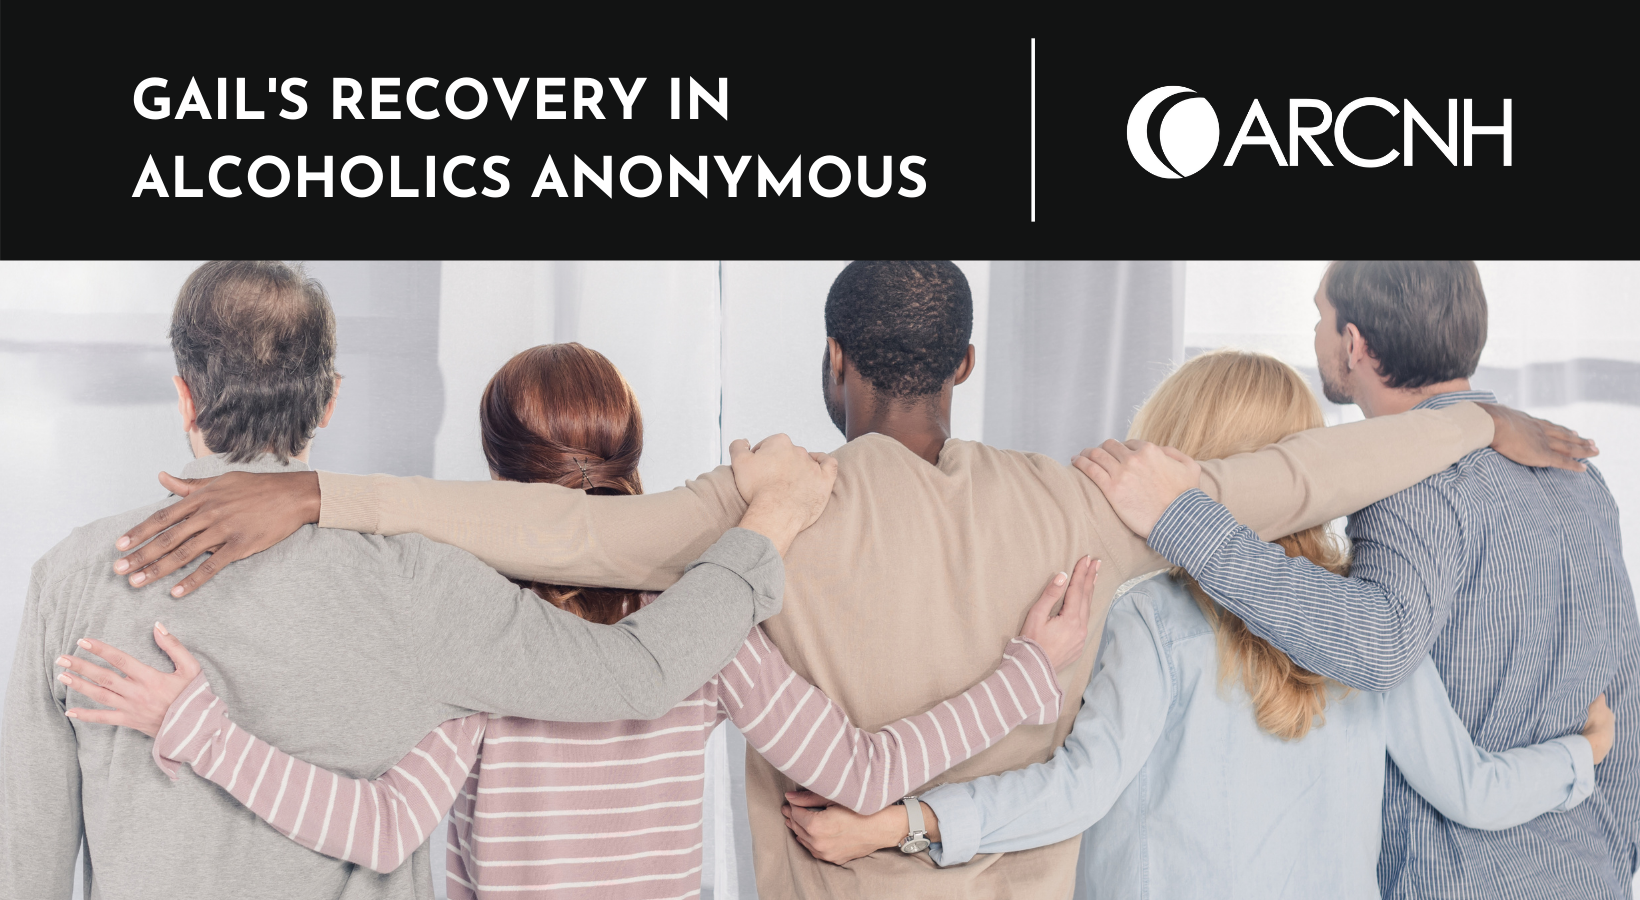 gail's recovery in alcoholics anonymous